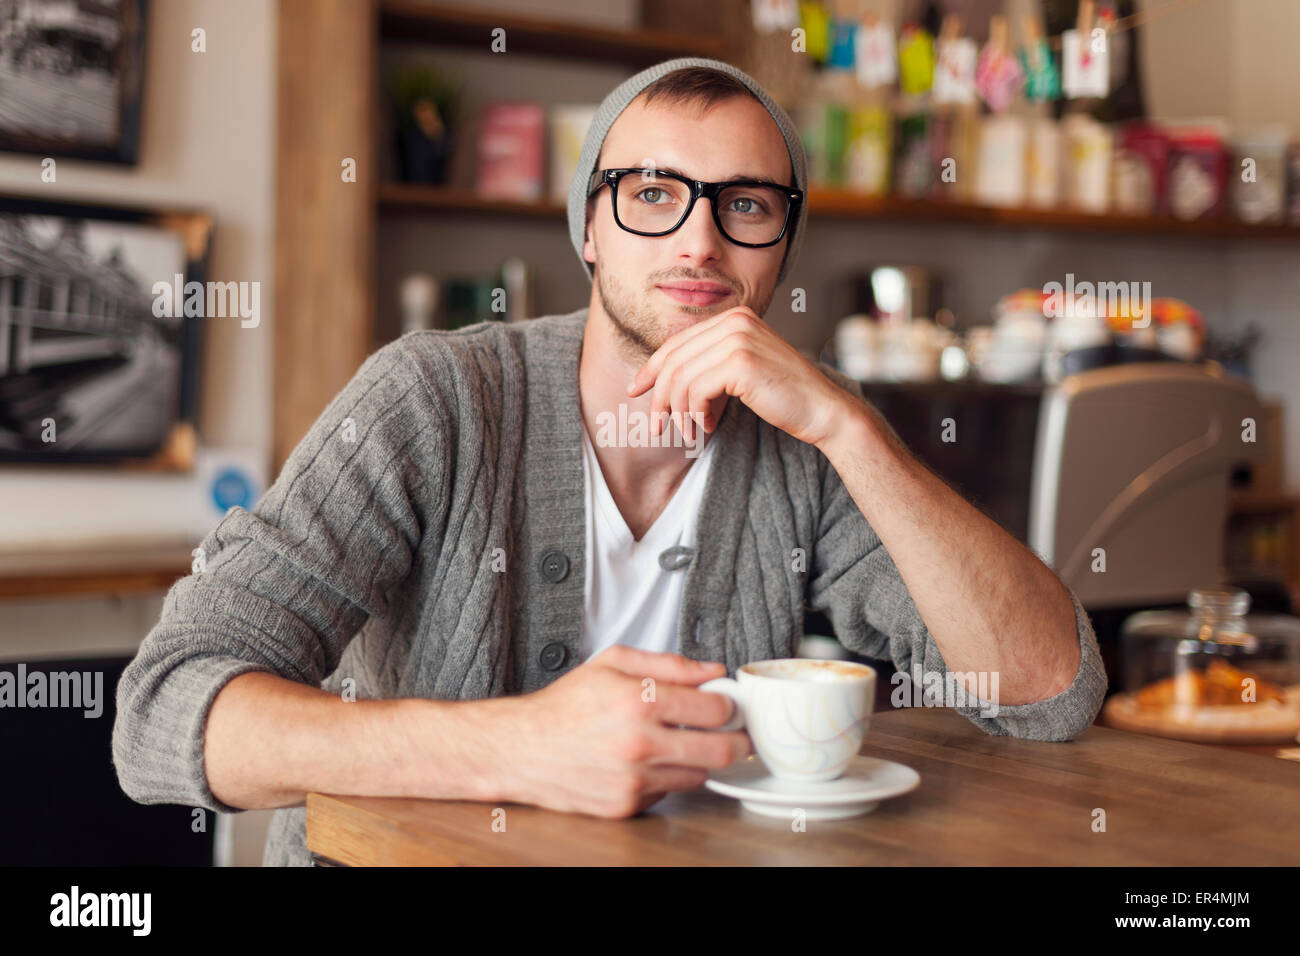 Portrait de l'homme élégant au café. Cracovie, Pologne Photo Stock